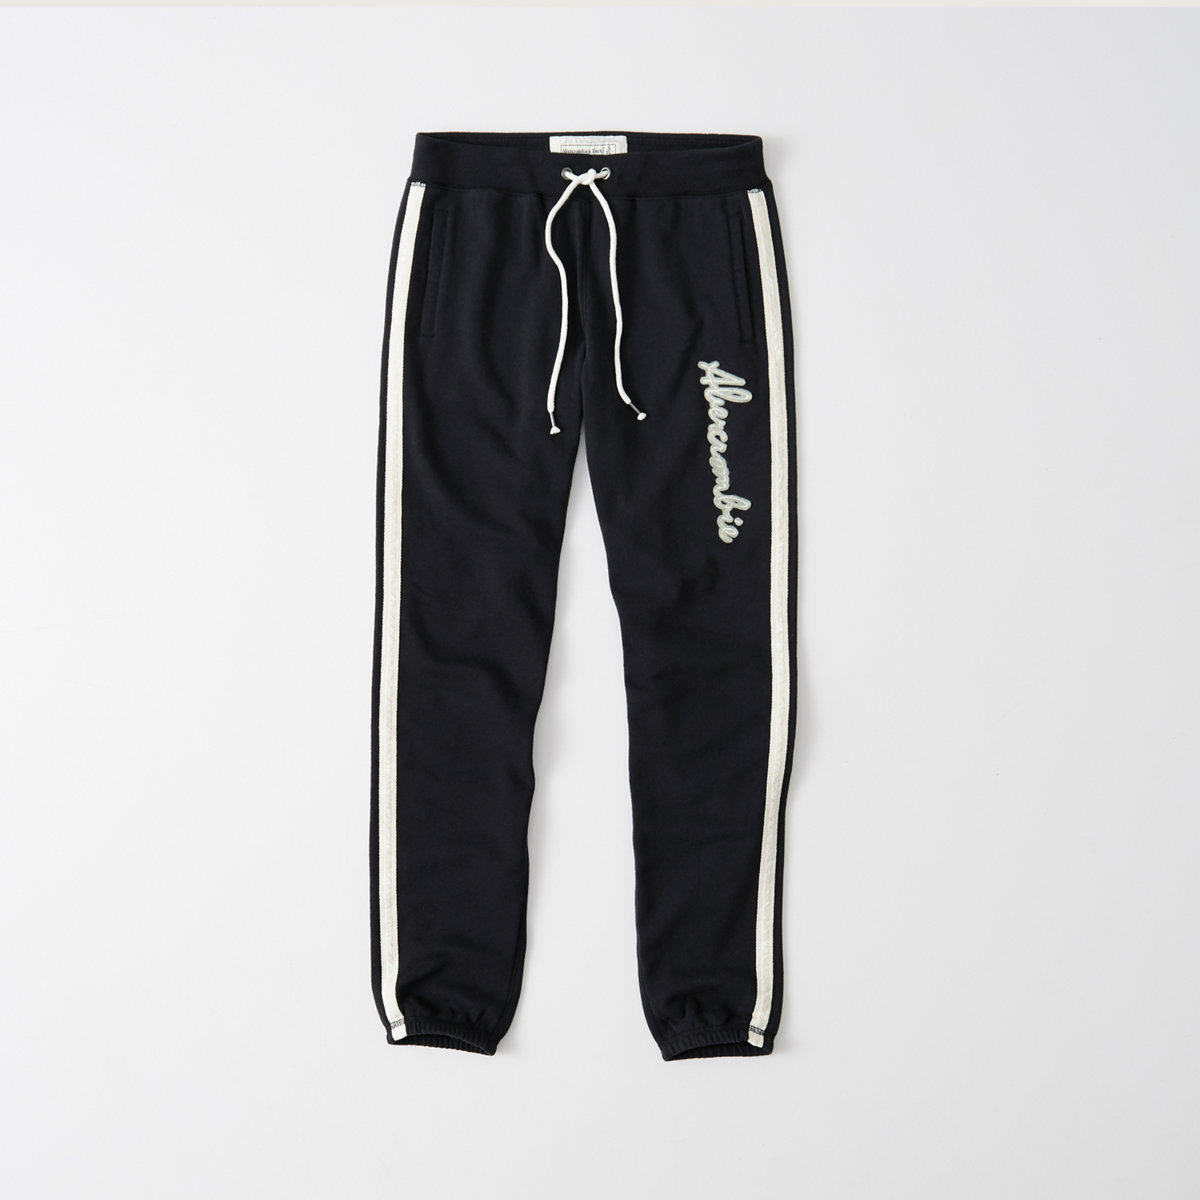 Banded Sweatpants